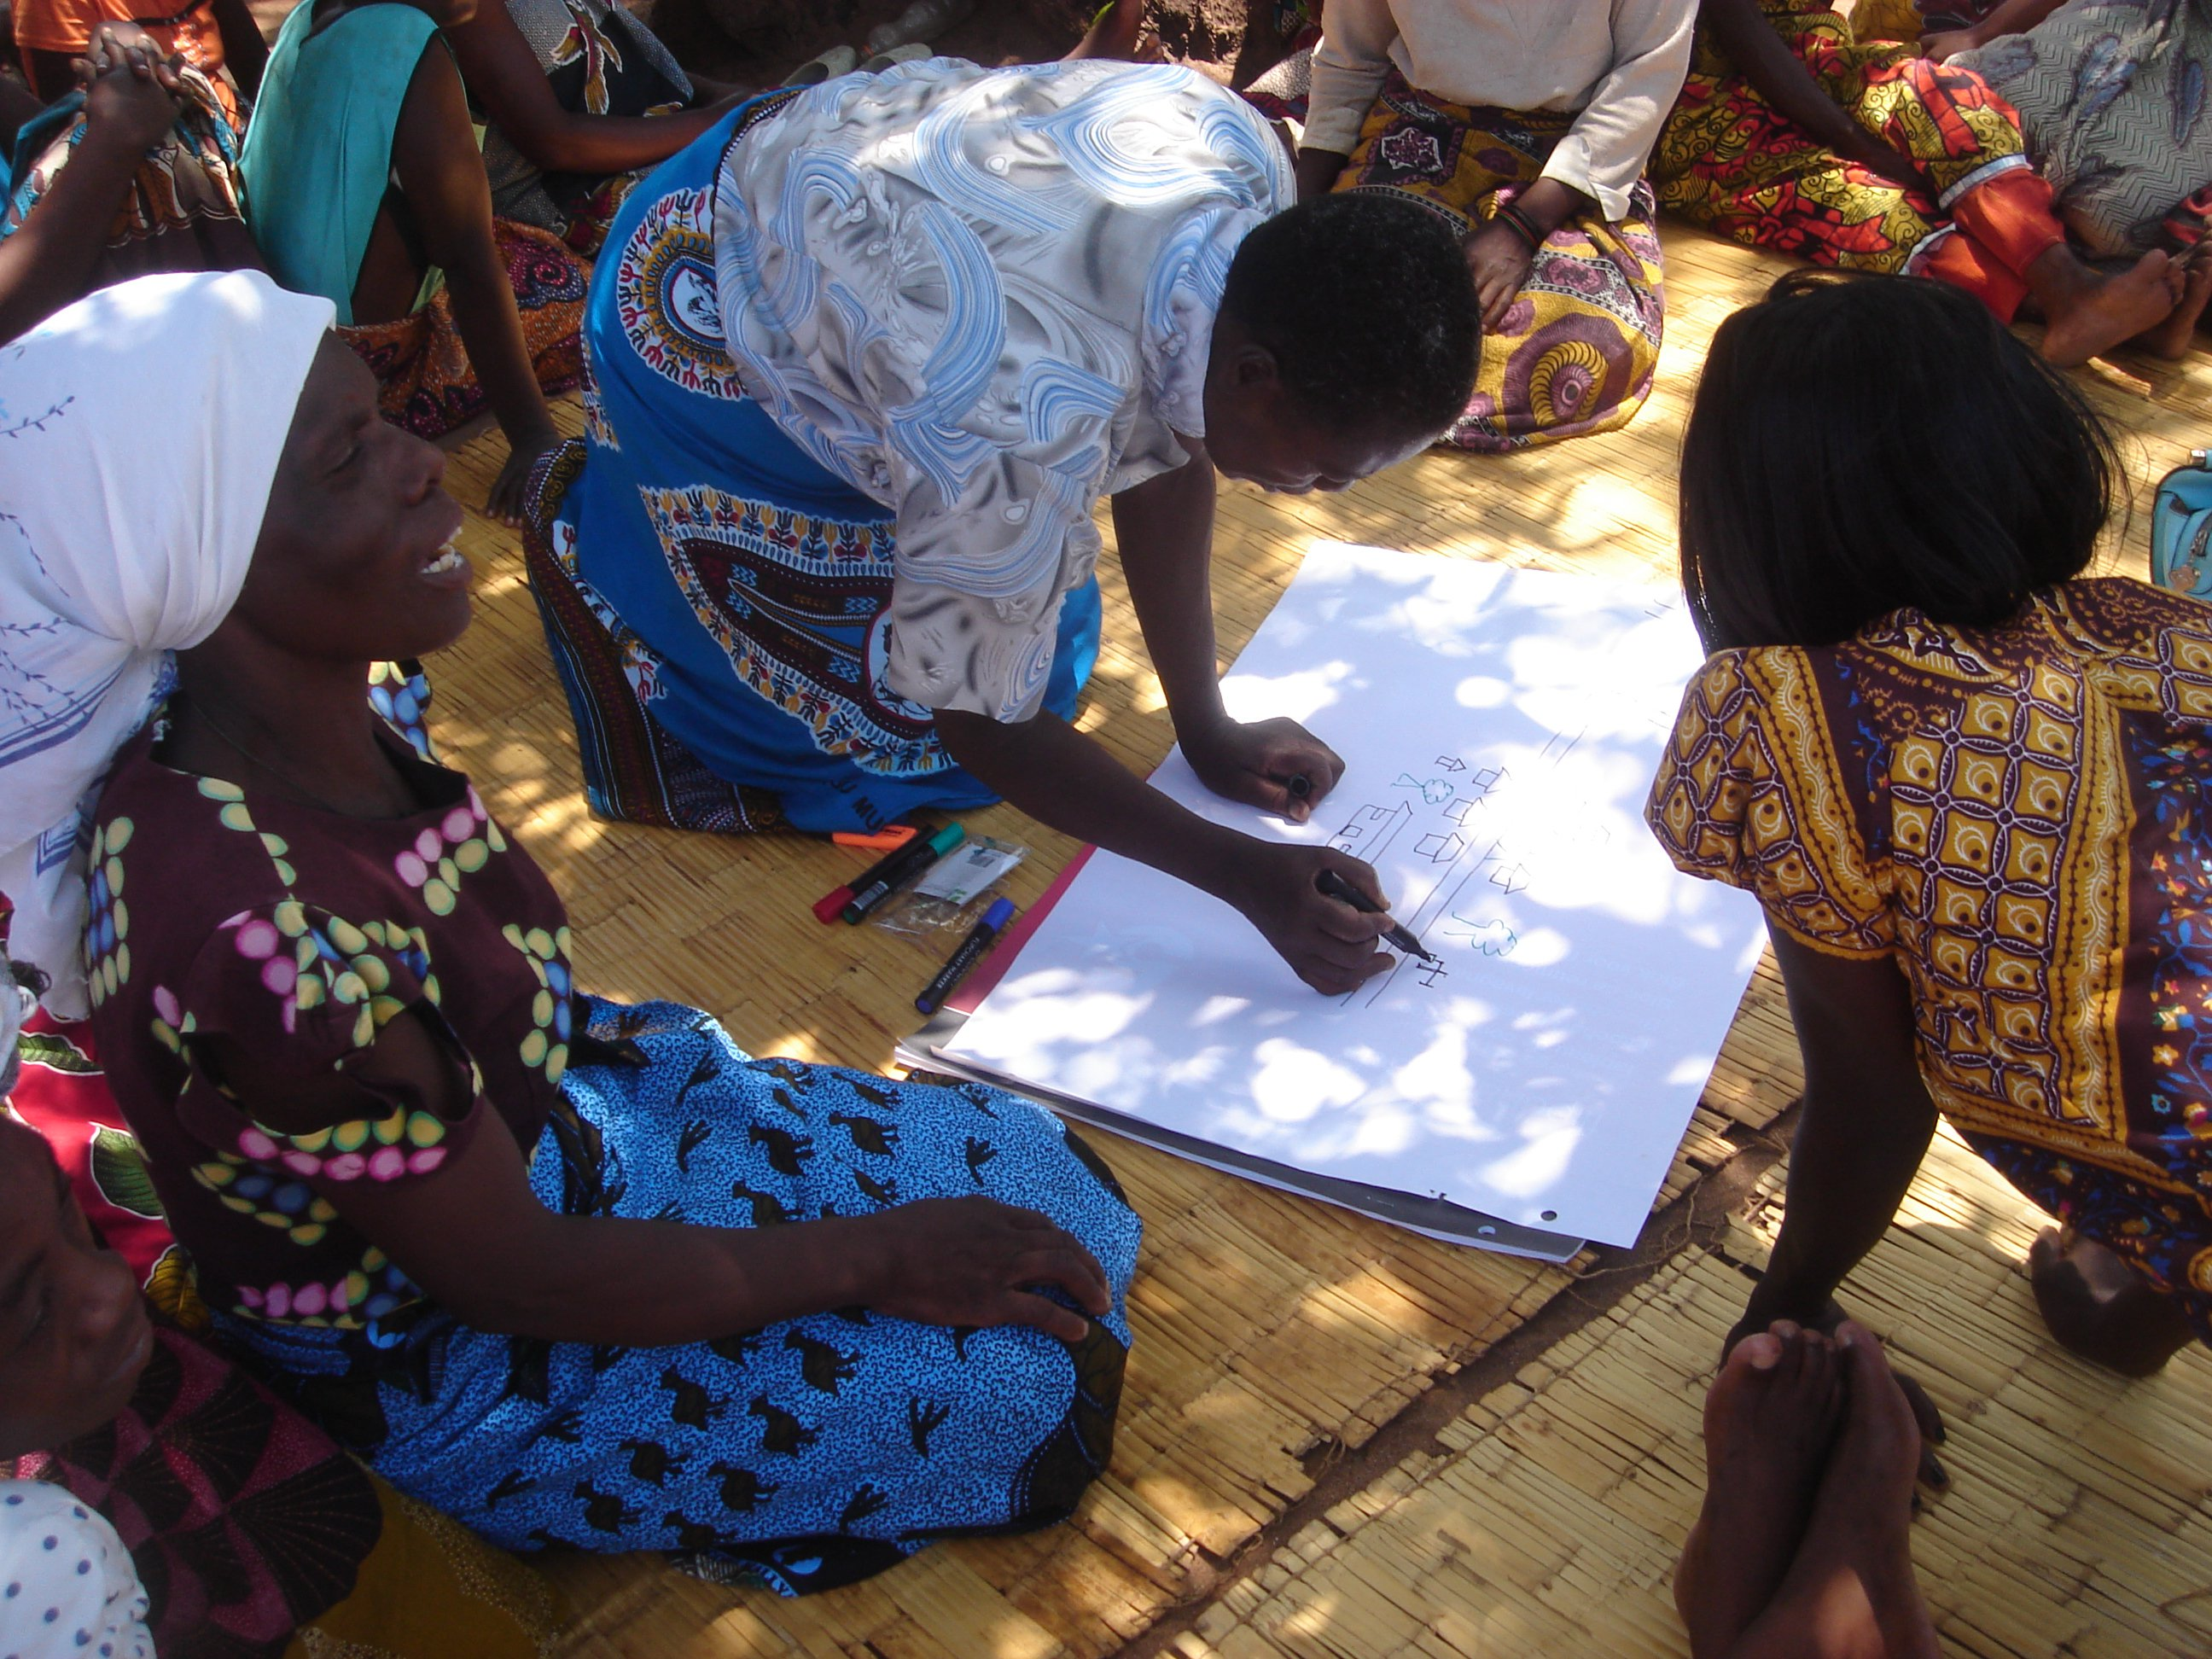 A women's focus group maps their village and surrounding environment, including different water sources. Kambwiri village, Salima district, Malawi. Photo: Naomi Oates/ODI